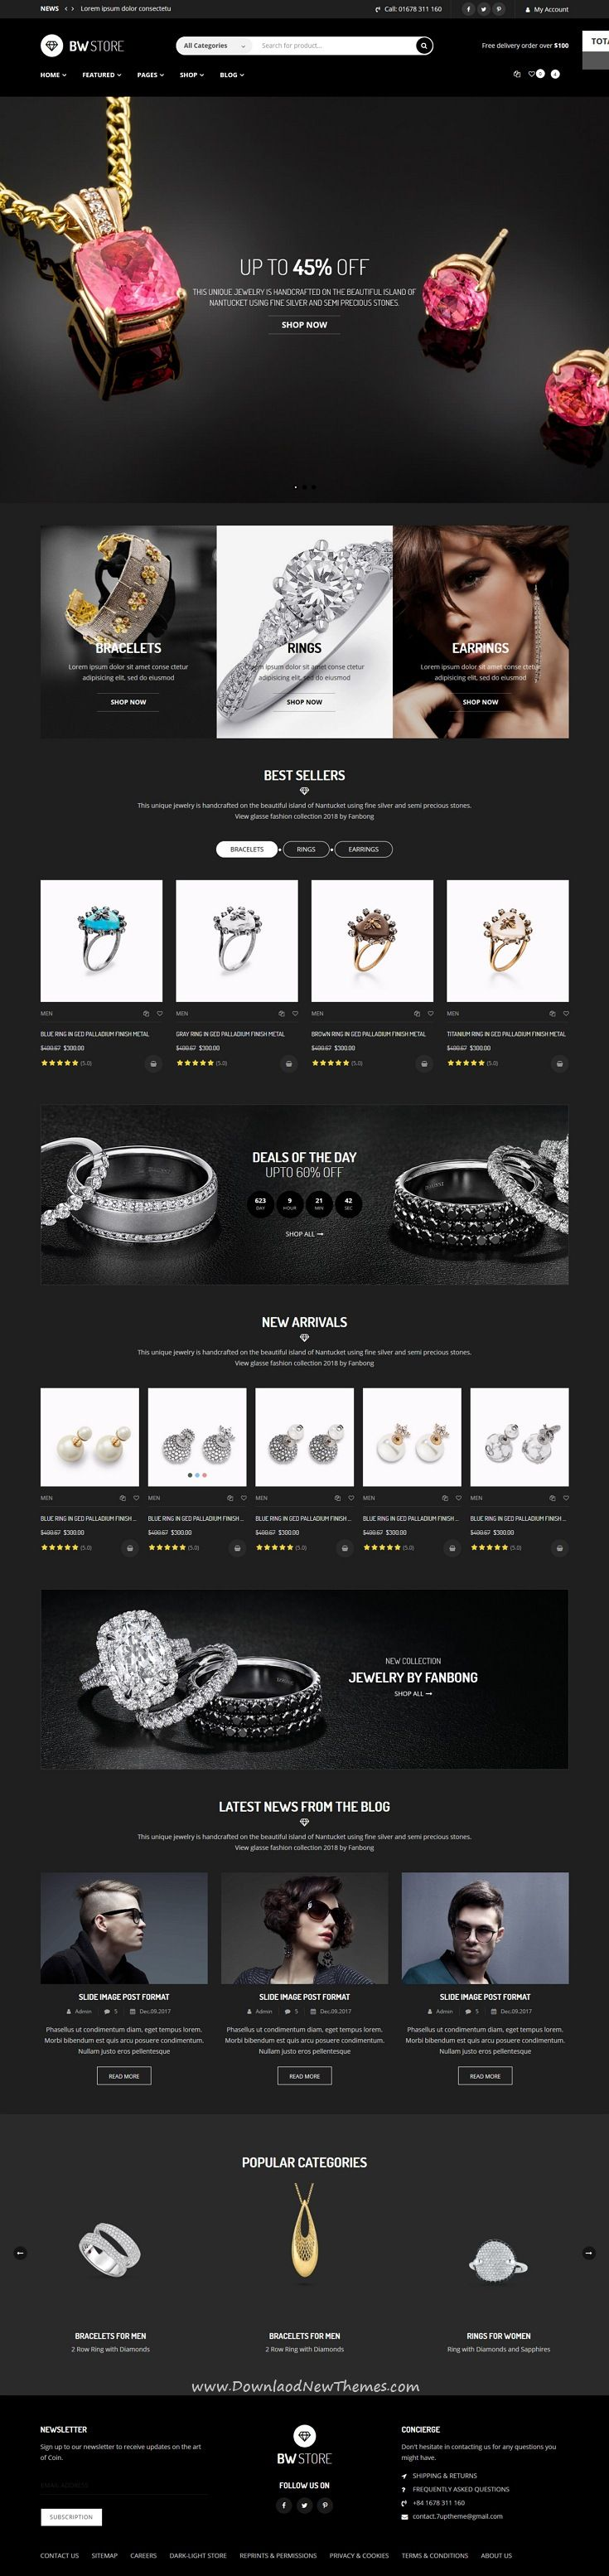 BW Store - eCommerce Html Template